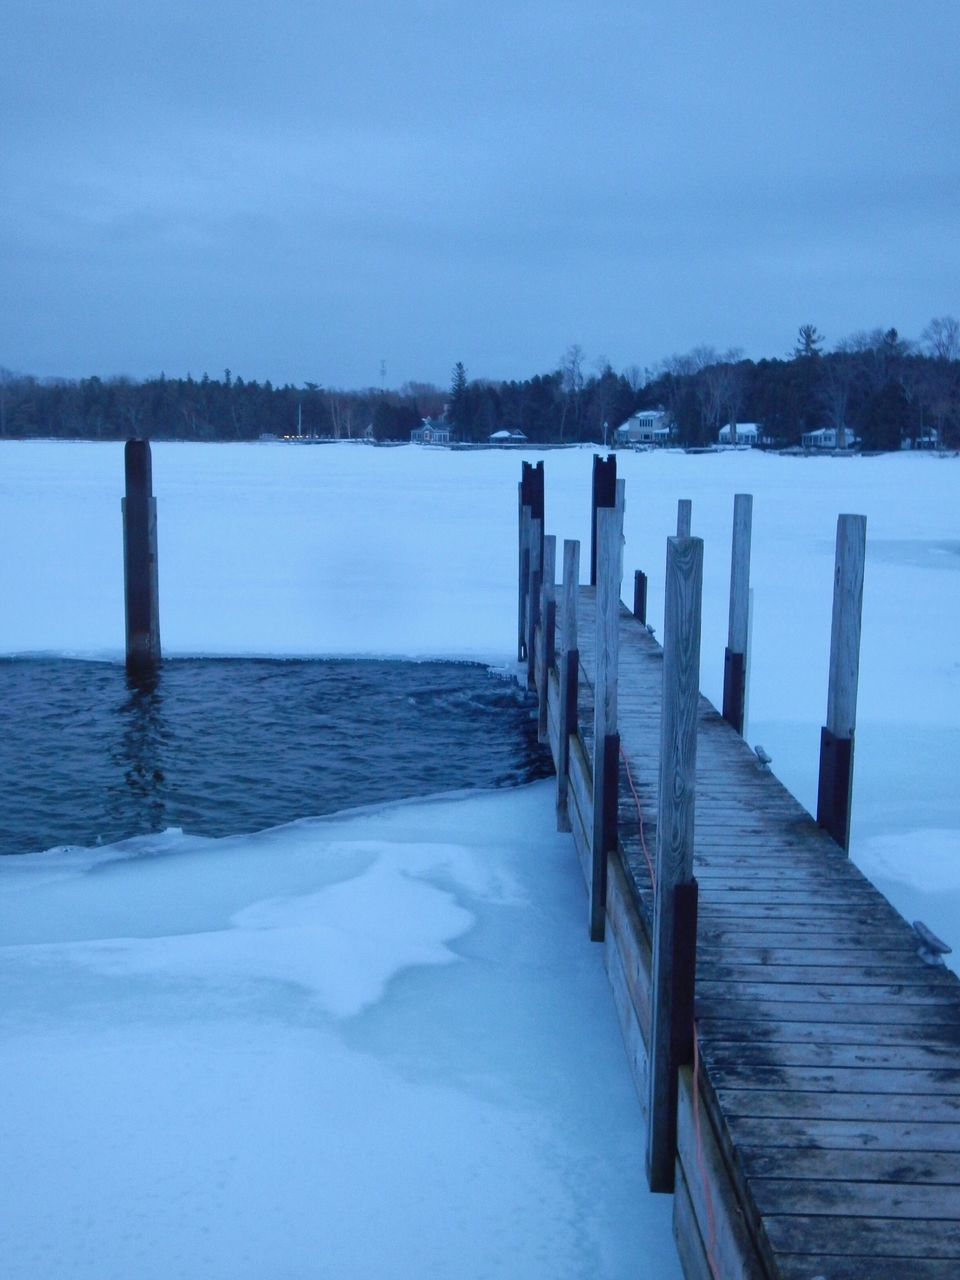 water, nature, sea, cold temperature, tranquility, scenics, tranquil scene, beauty in nature, winter, outdoors, snow, day, sky, no people, wooden post, horizon over water, tree